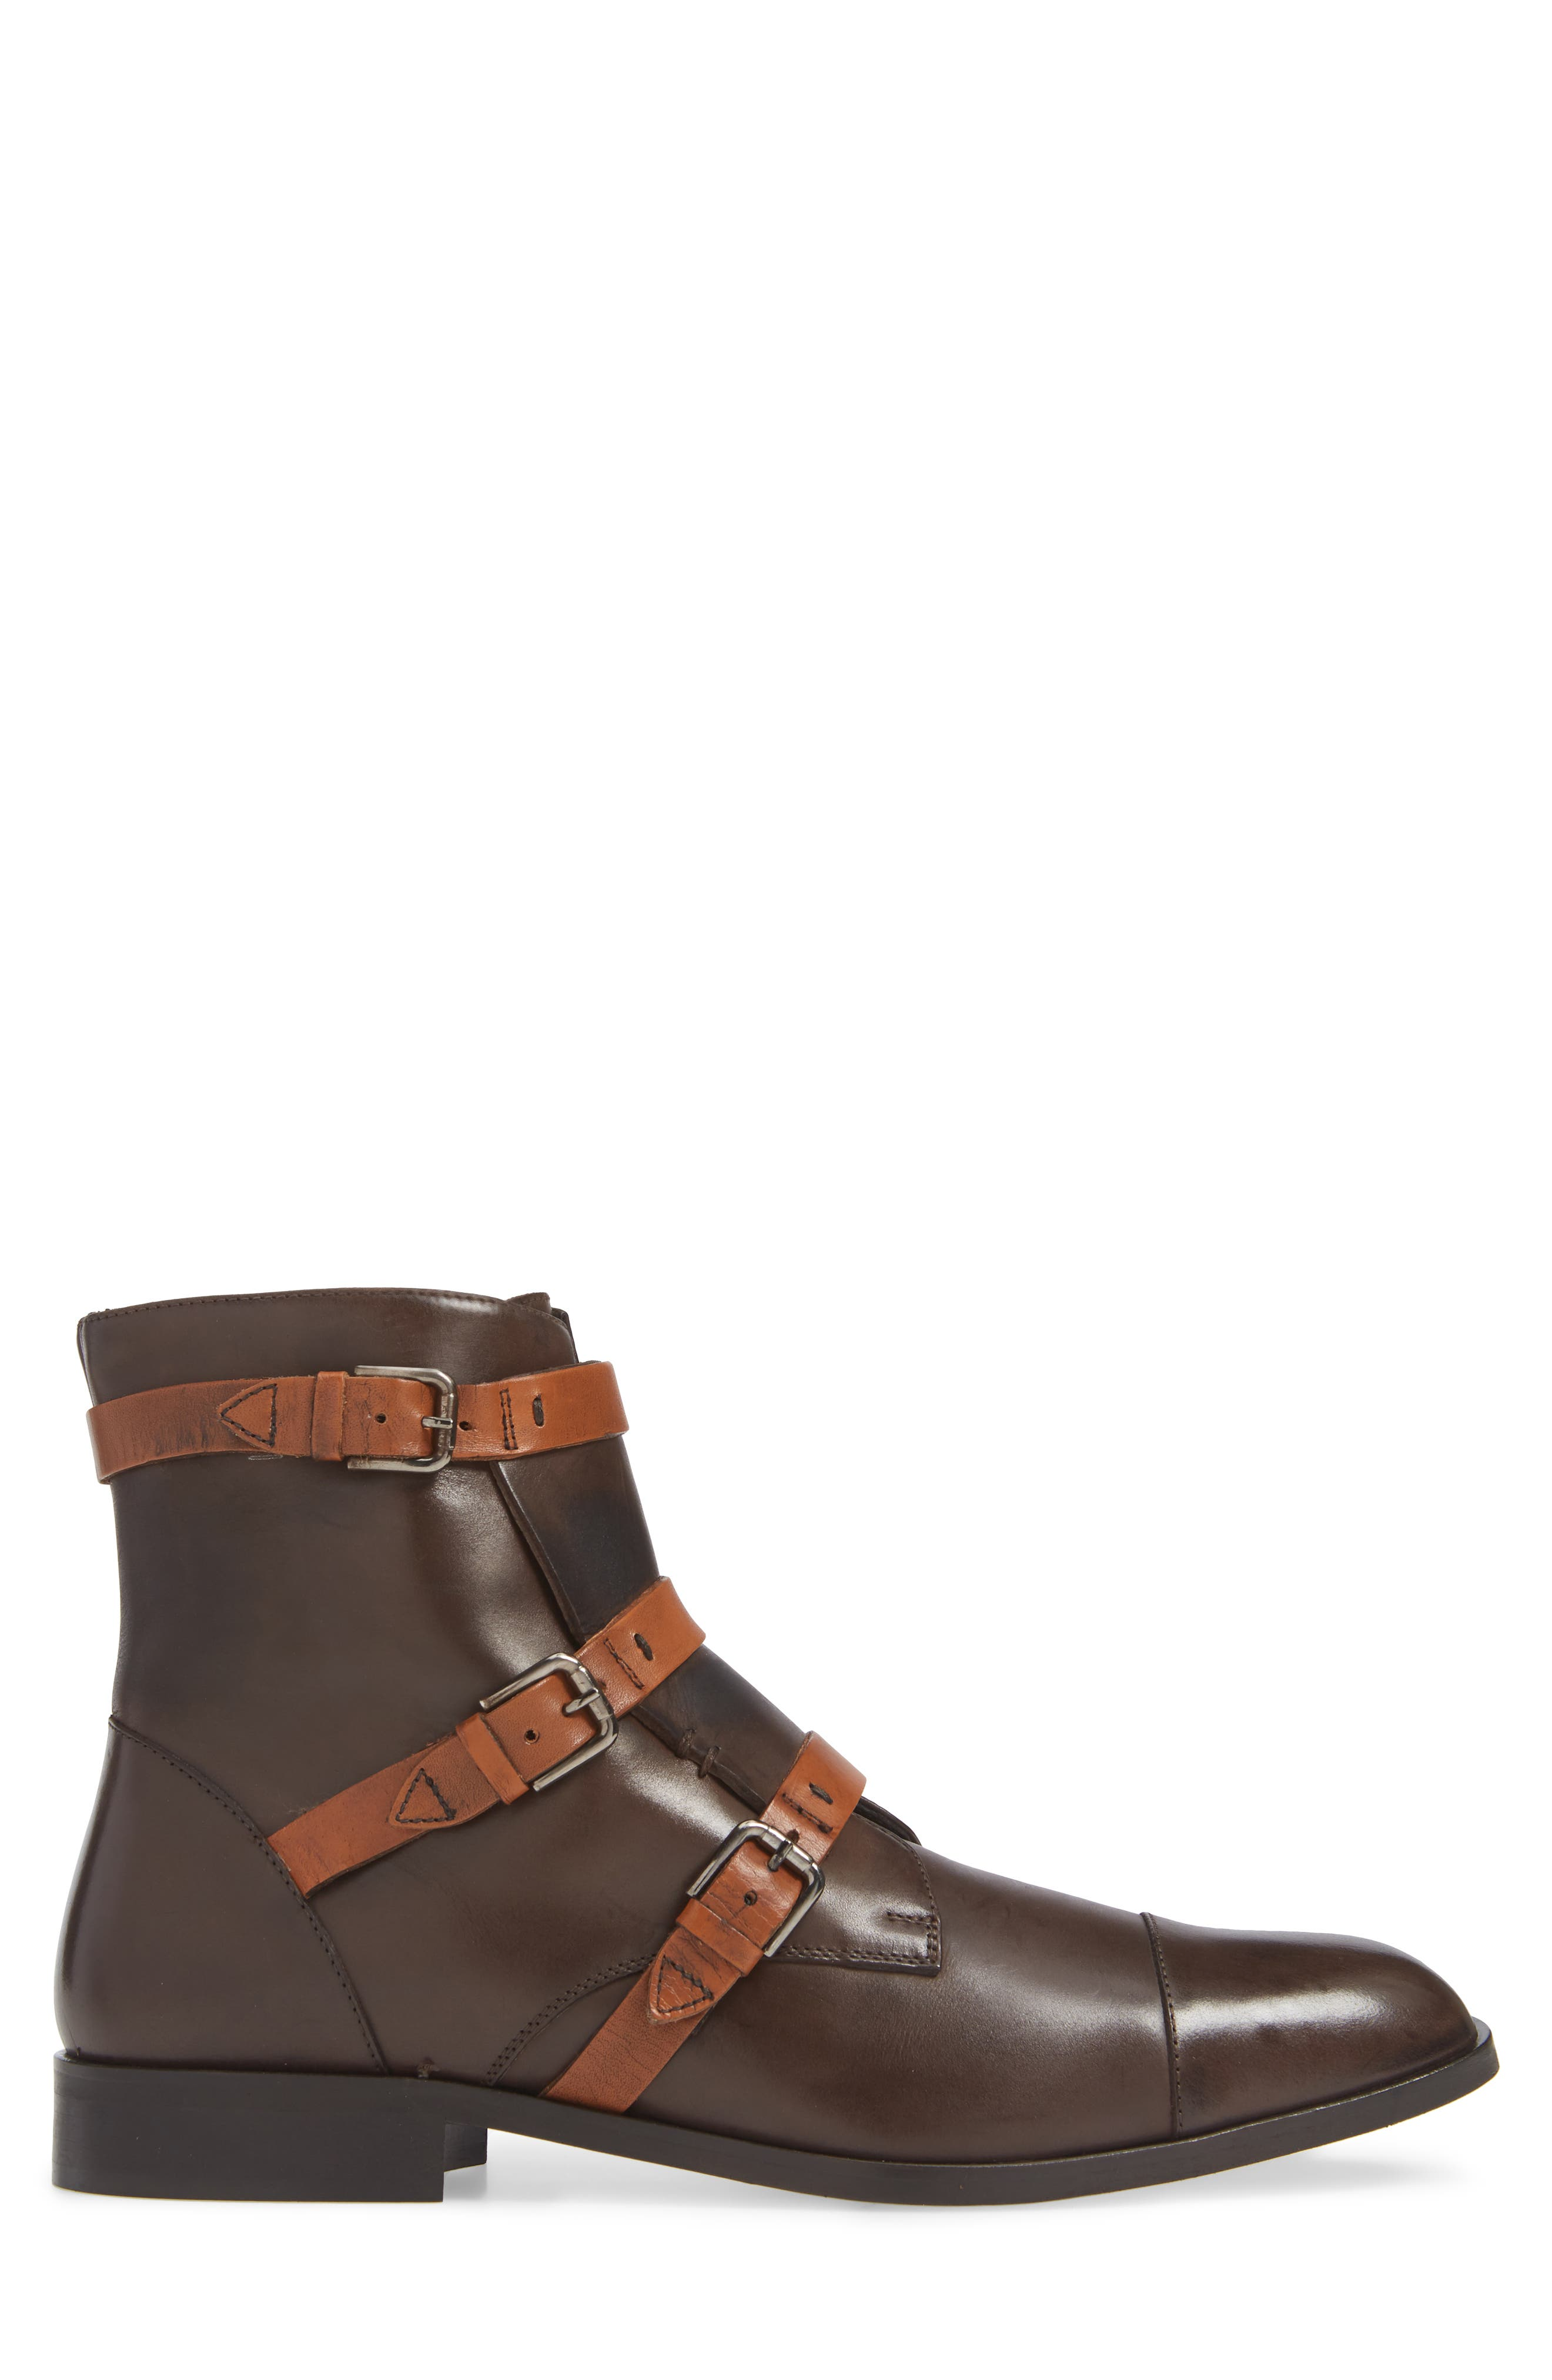 DONALD PLINER,                             Martino Buckle Strap Boot,                             Alternate thumbnail 3, color,                             205